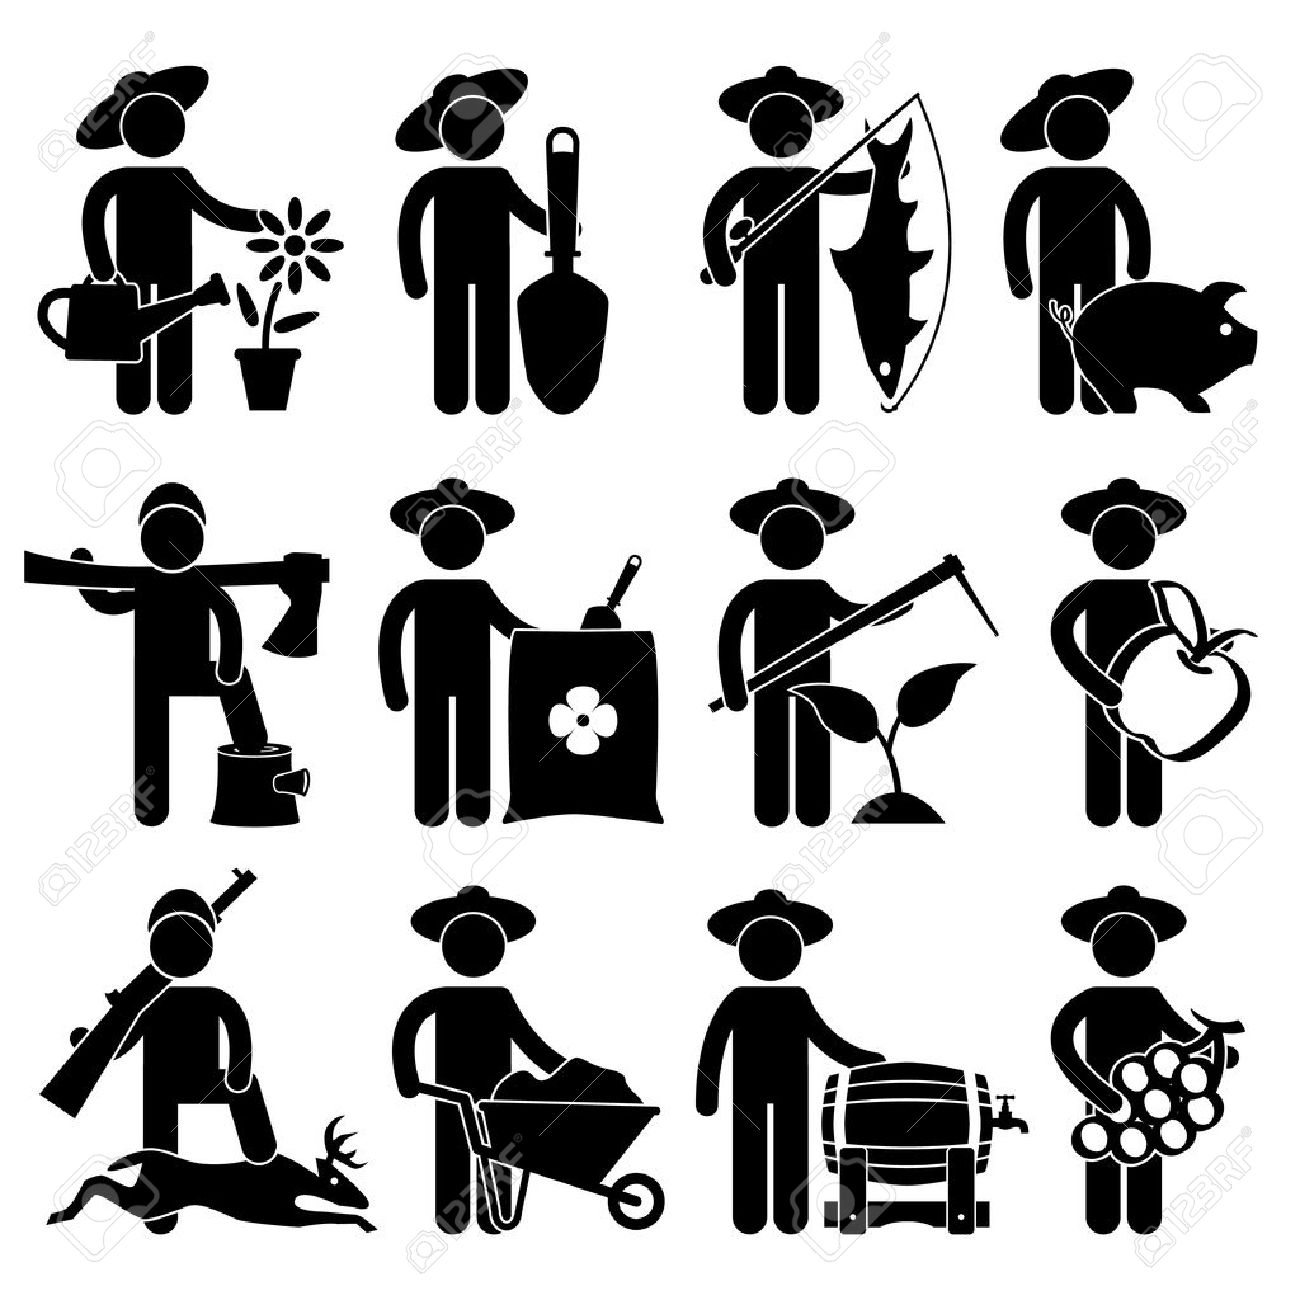 farmer gardener fisherman poultry lumberjack hunter village job farmer gardener fisherman poultry lumberjack hunter village job occupation sign pictogram symbol icon stock vector